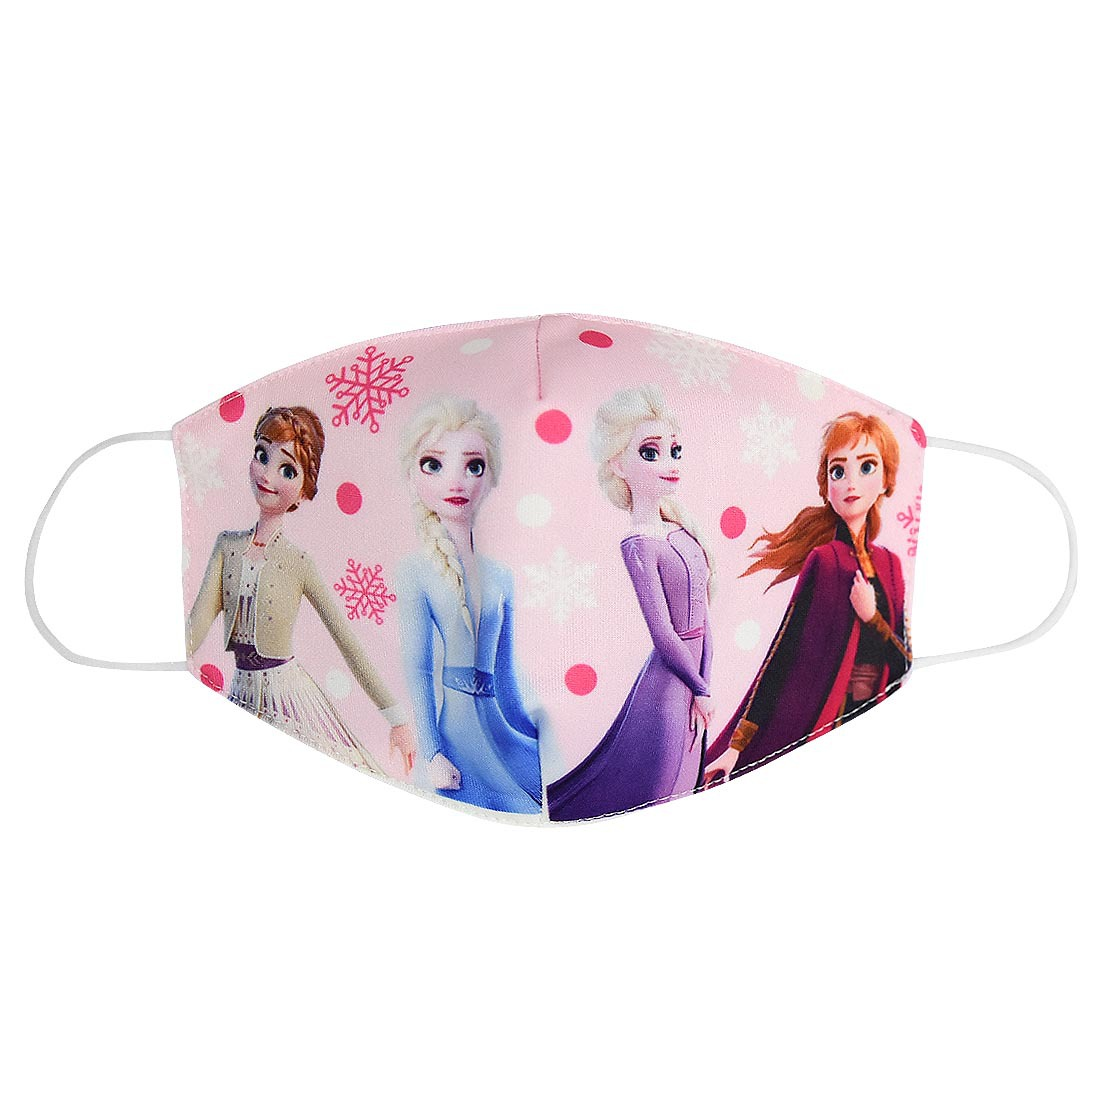 Cartoon Print Boys Girls Dustproof Printed Masks For Adult And Kids Face Mouth Mask 1